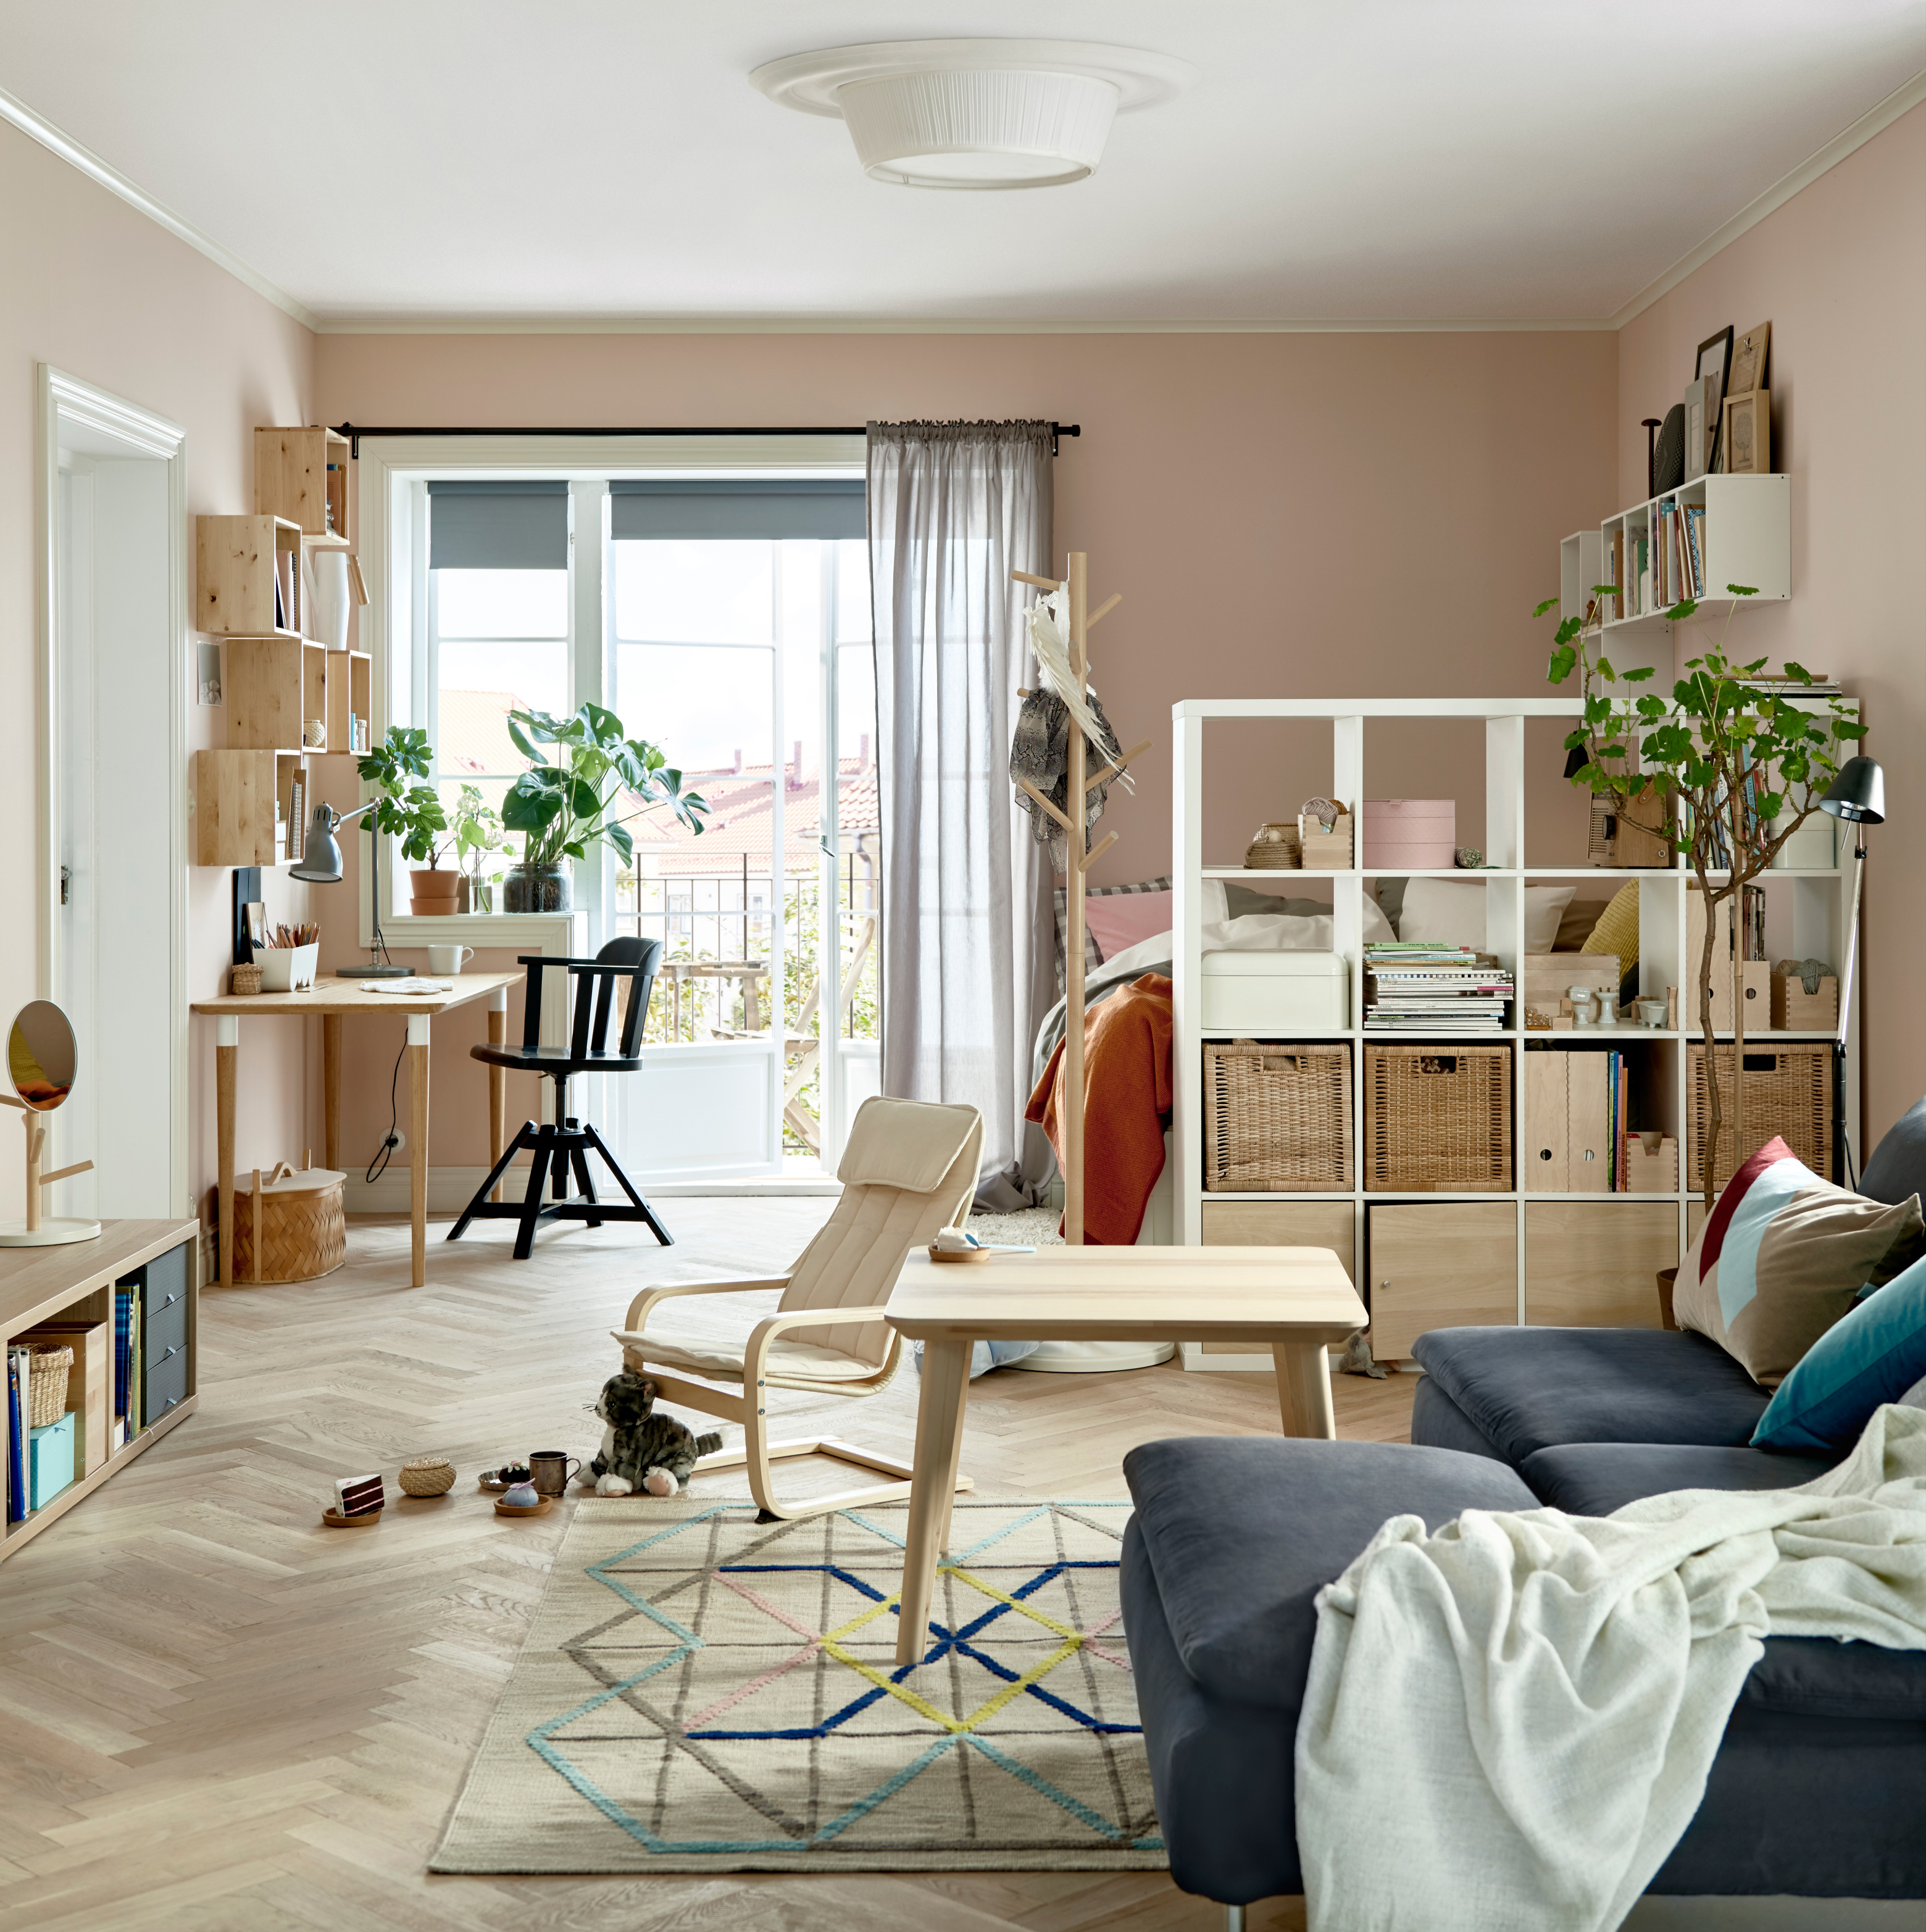 Apartment Searching Sites: It Won't Feel Like One Room With These Clever Arranging